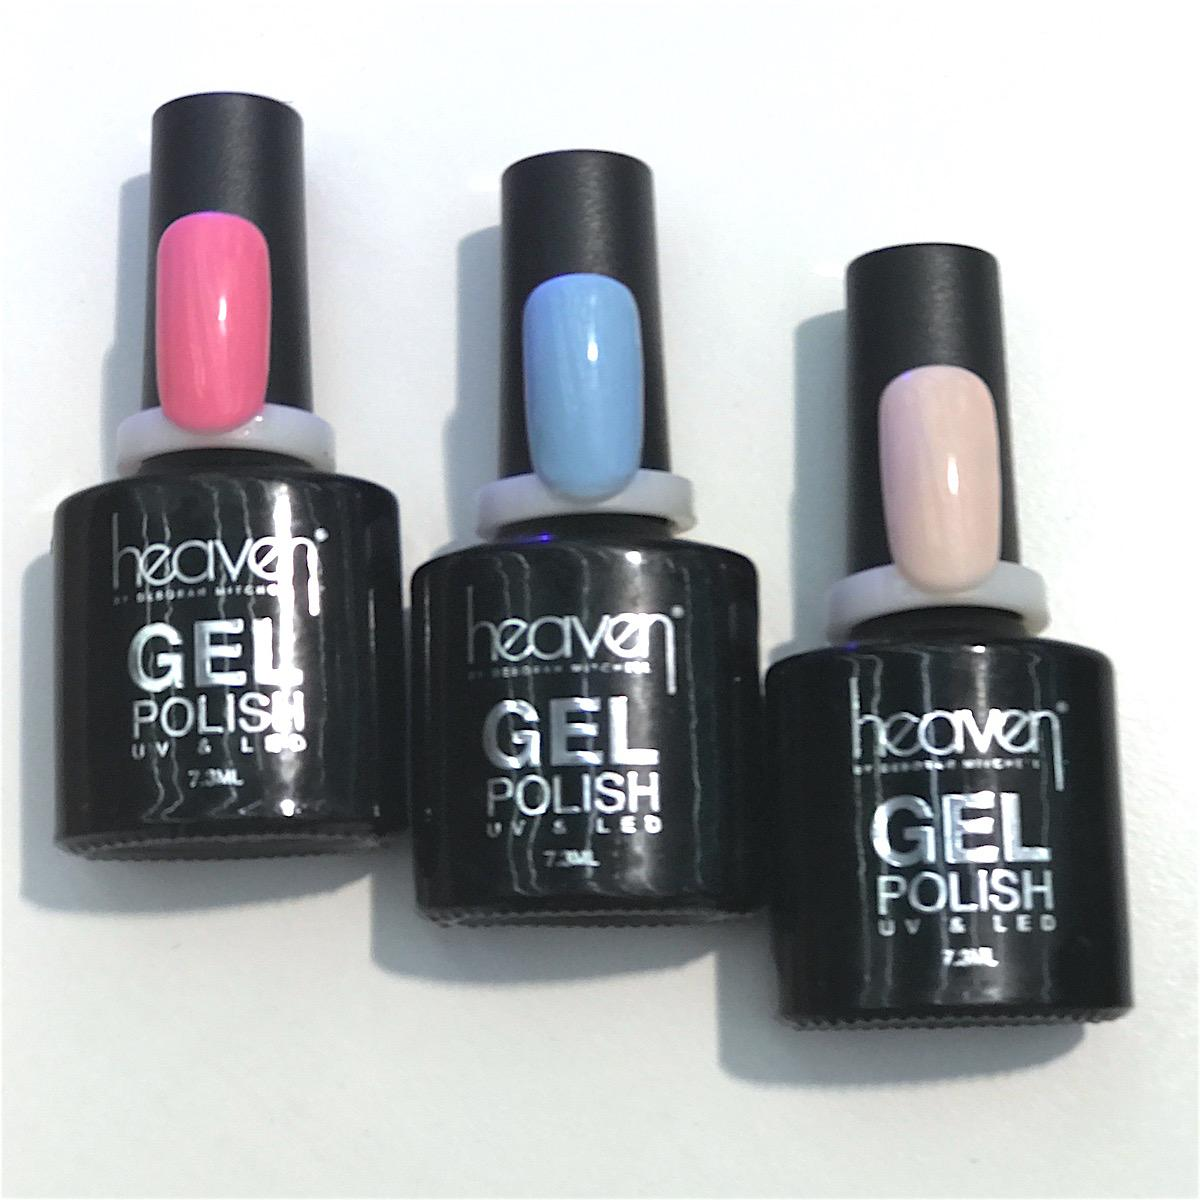 sejem kozmetike love beauty heaven gel polish by Beautyfullblog